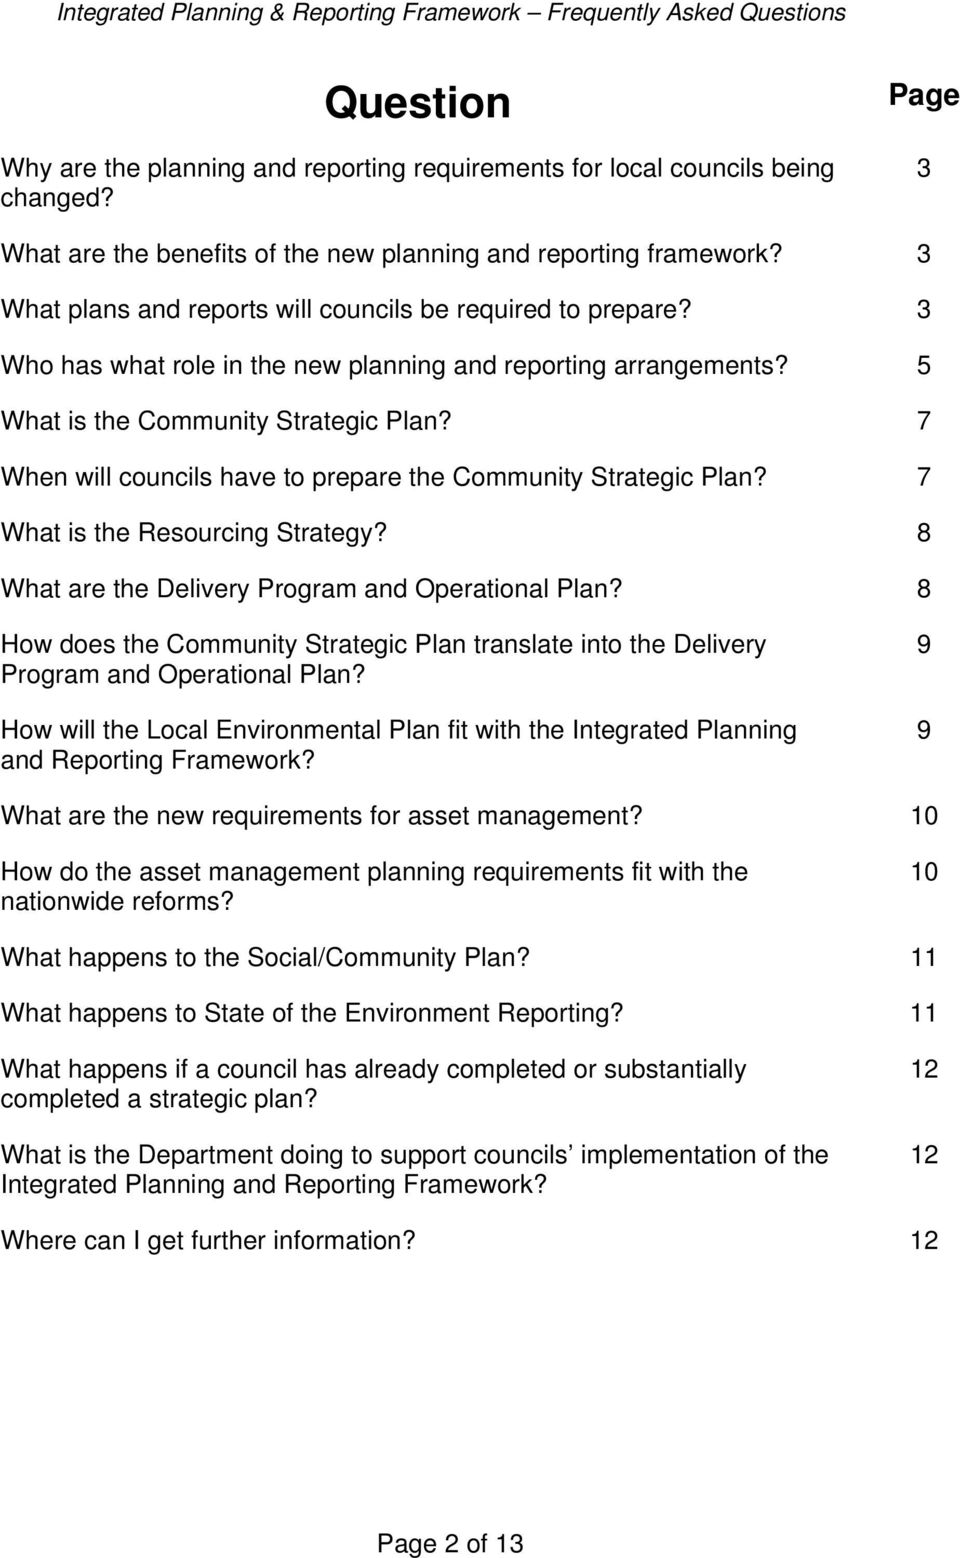 7 When will councils have to prepare the Community Strategic Plan? 7 What is the Resourcing Strategy? 8 What are the Delivery Program and Operational Plan?